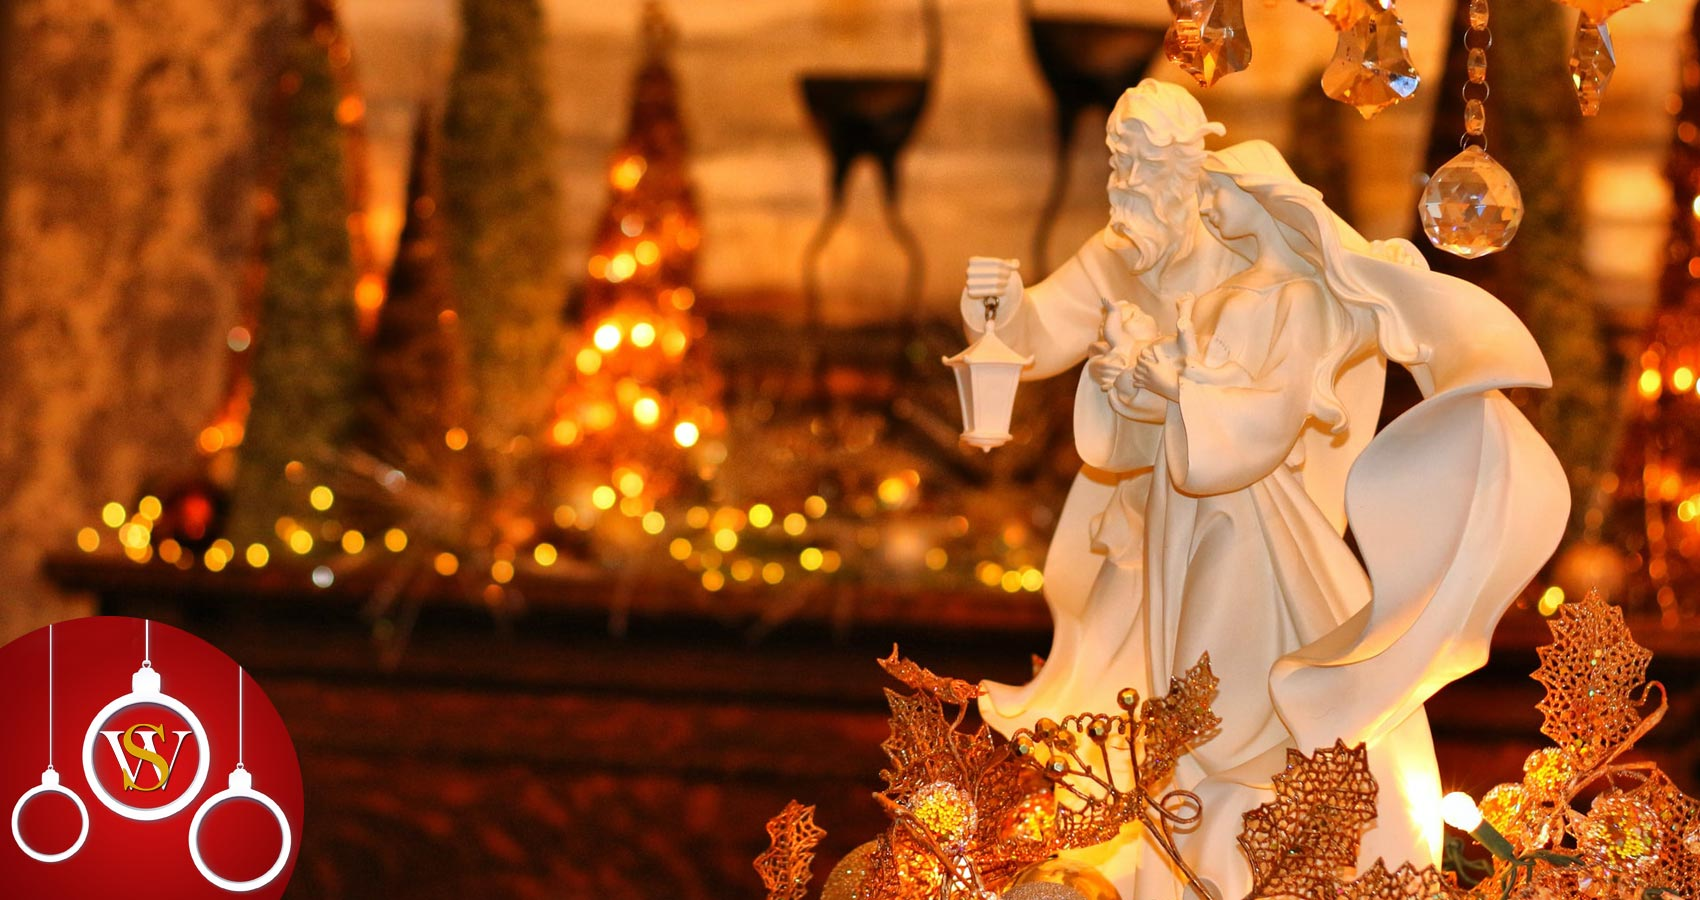 Christmas Floats, a poem by Fotoula Reynolds at Spillwords.com